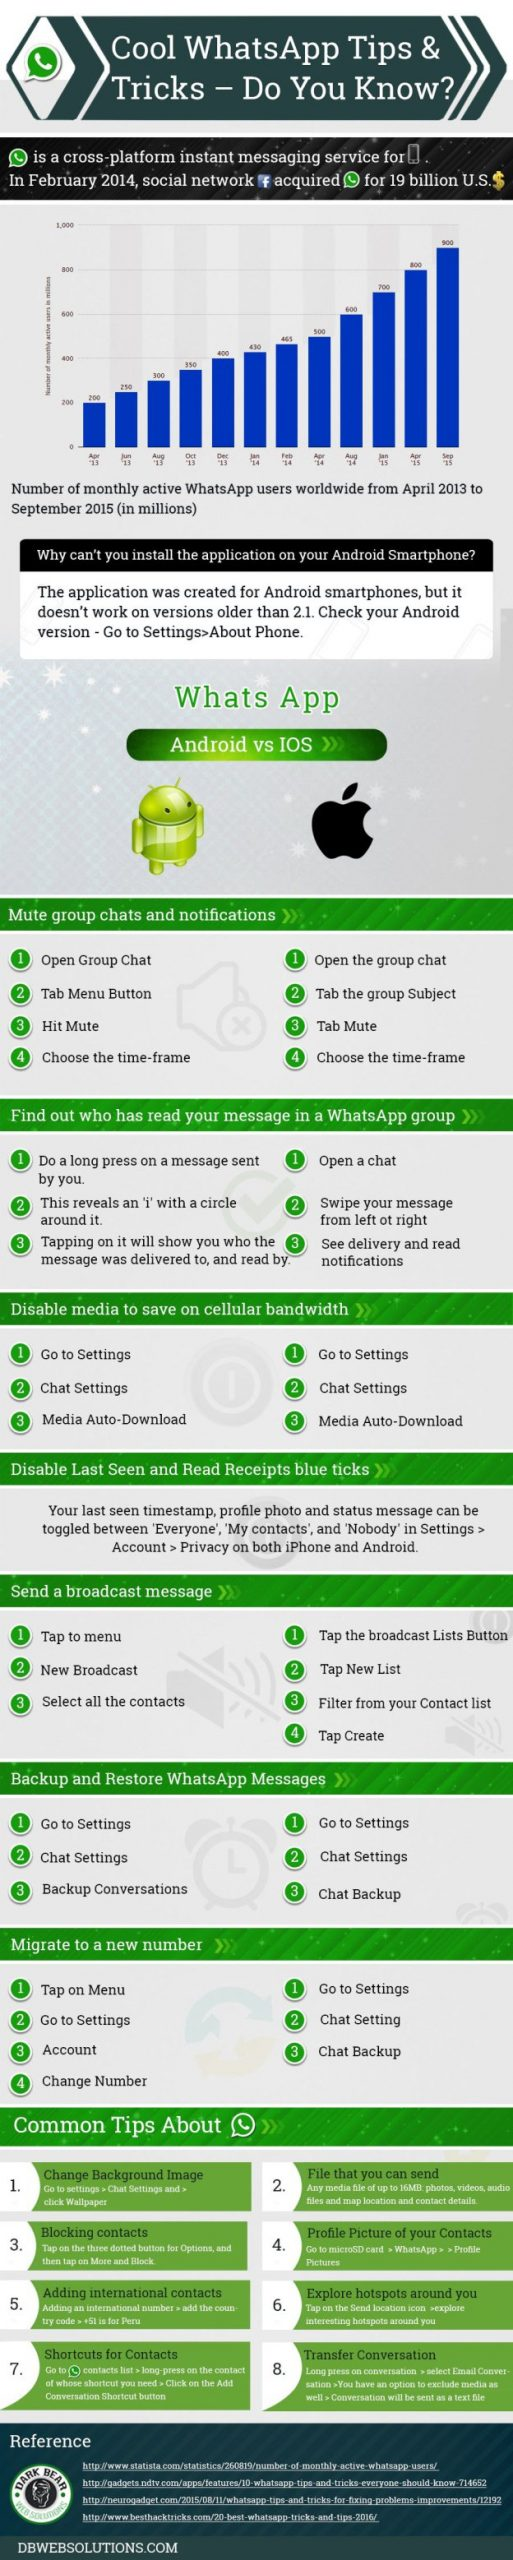 15 WhatsApp Tricks You May Not Know About